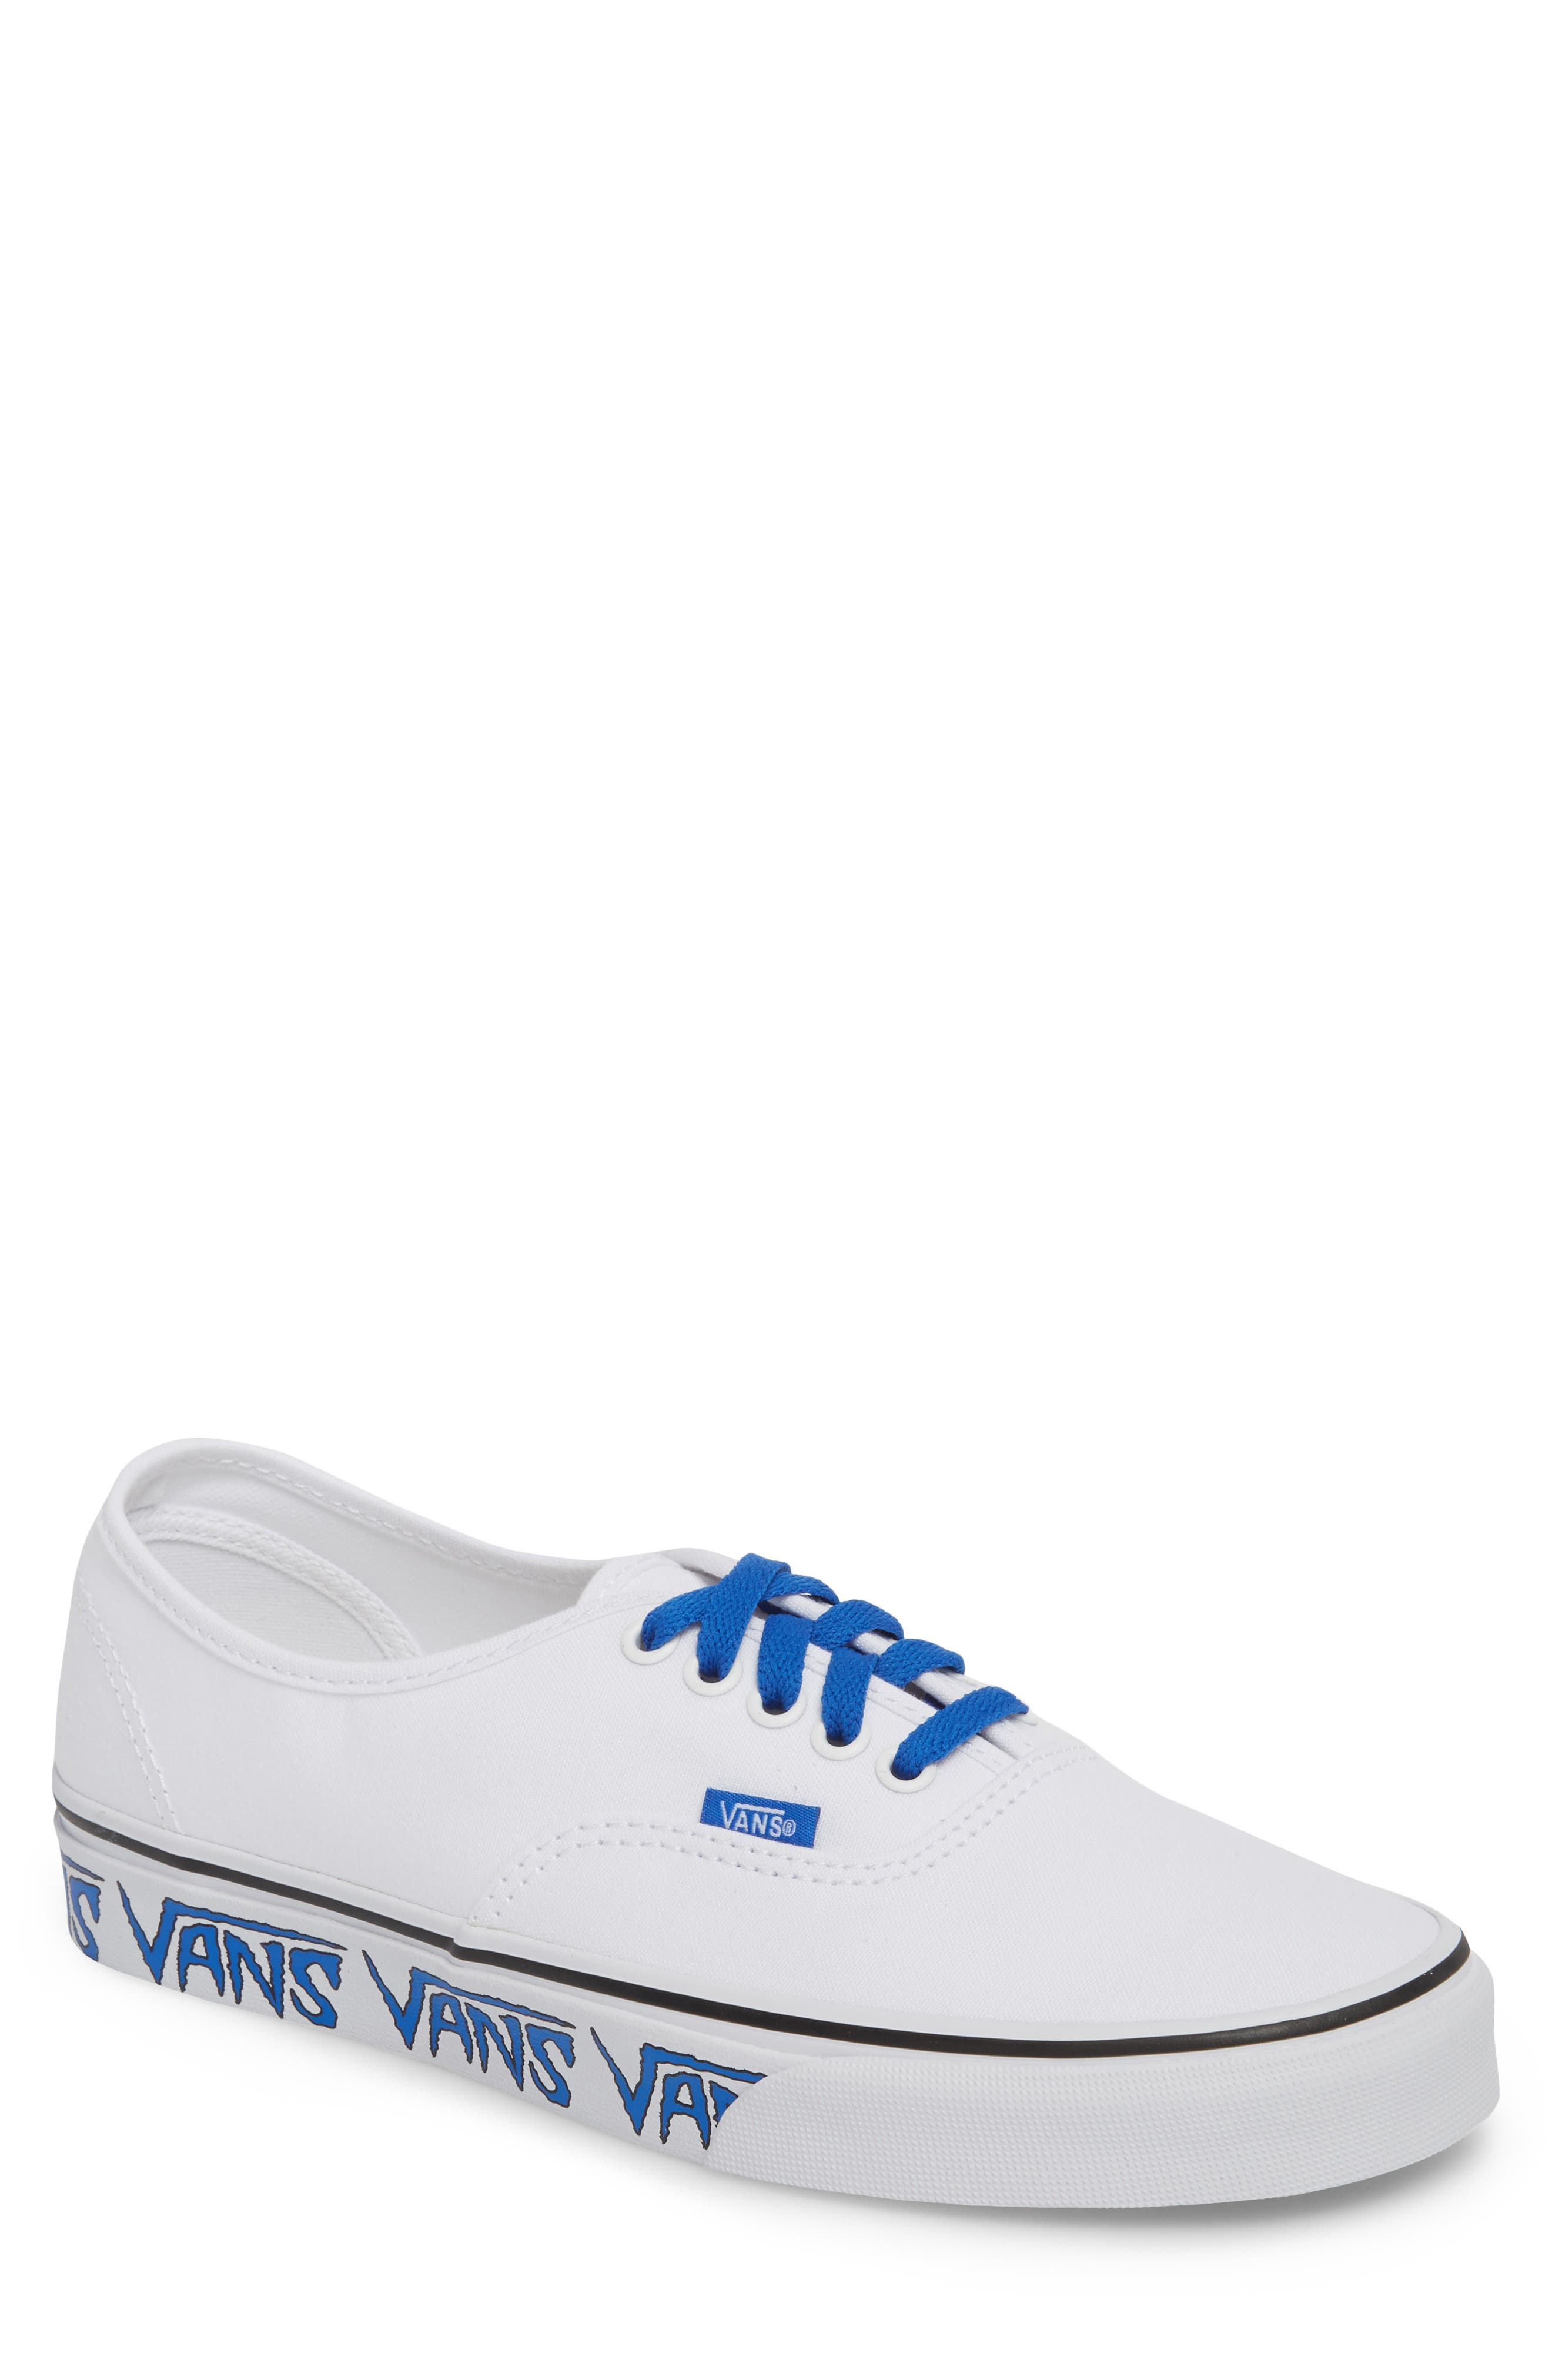 Authentic Sketch Sidewall Sneaker,                             Main thumbnail 1, color,